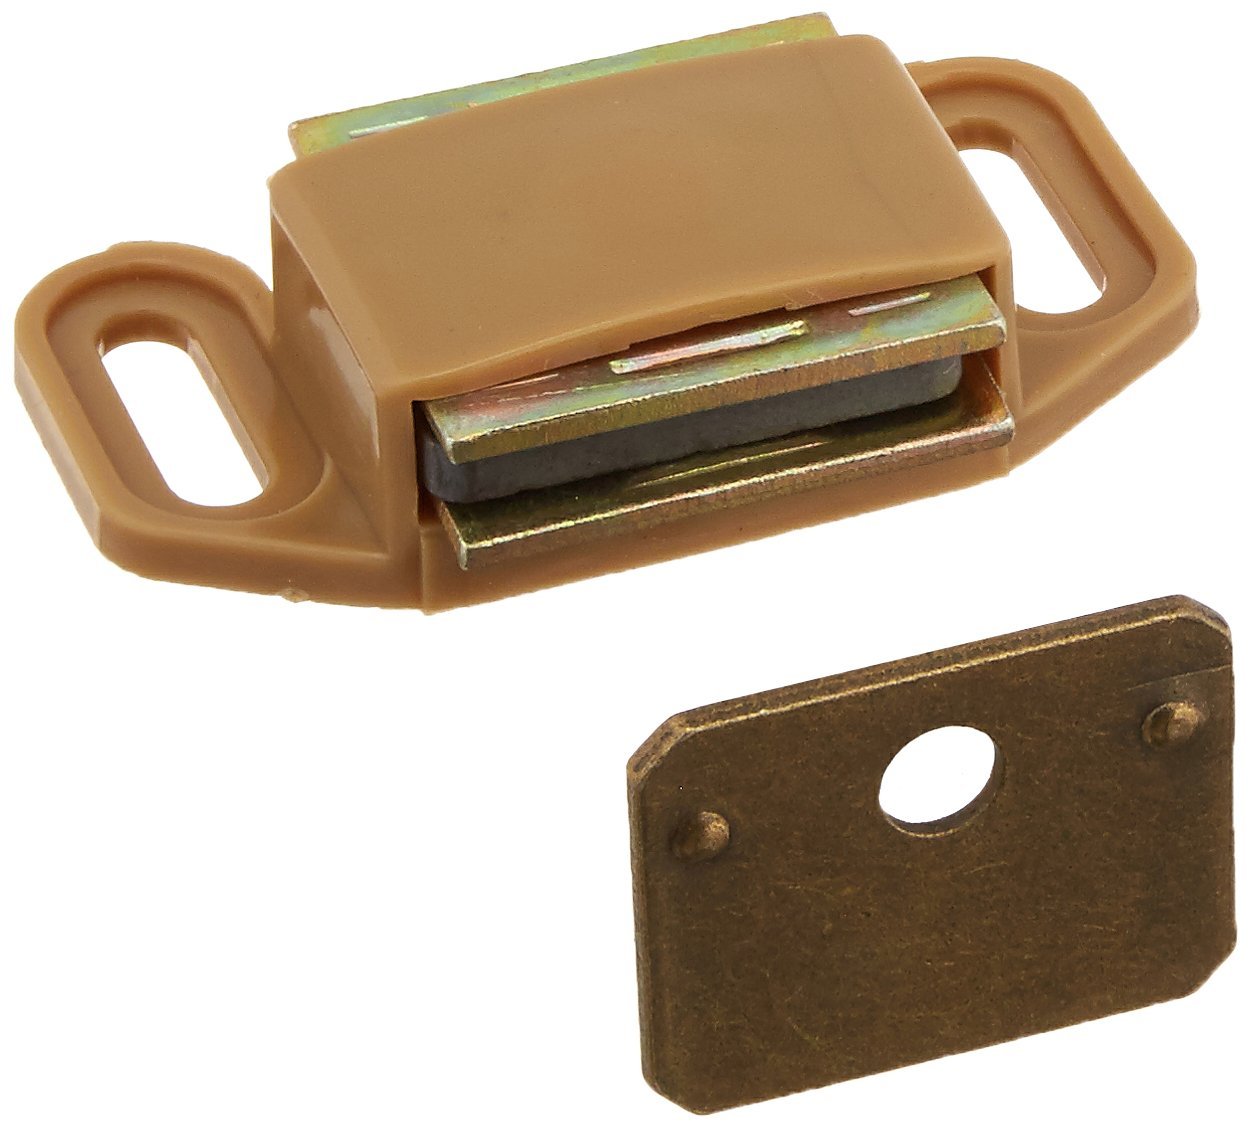 Amerock BP3473PT Magnet Catch, 1-1/8 In L X 3/4 In W Strike, Plastic Case by Amerock (Image #1)